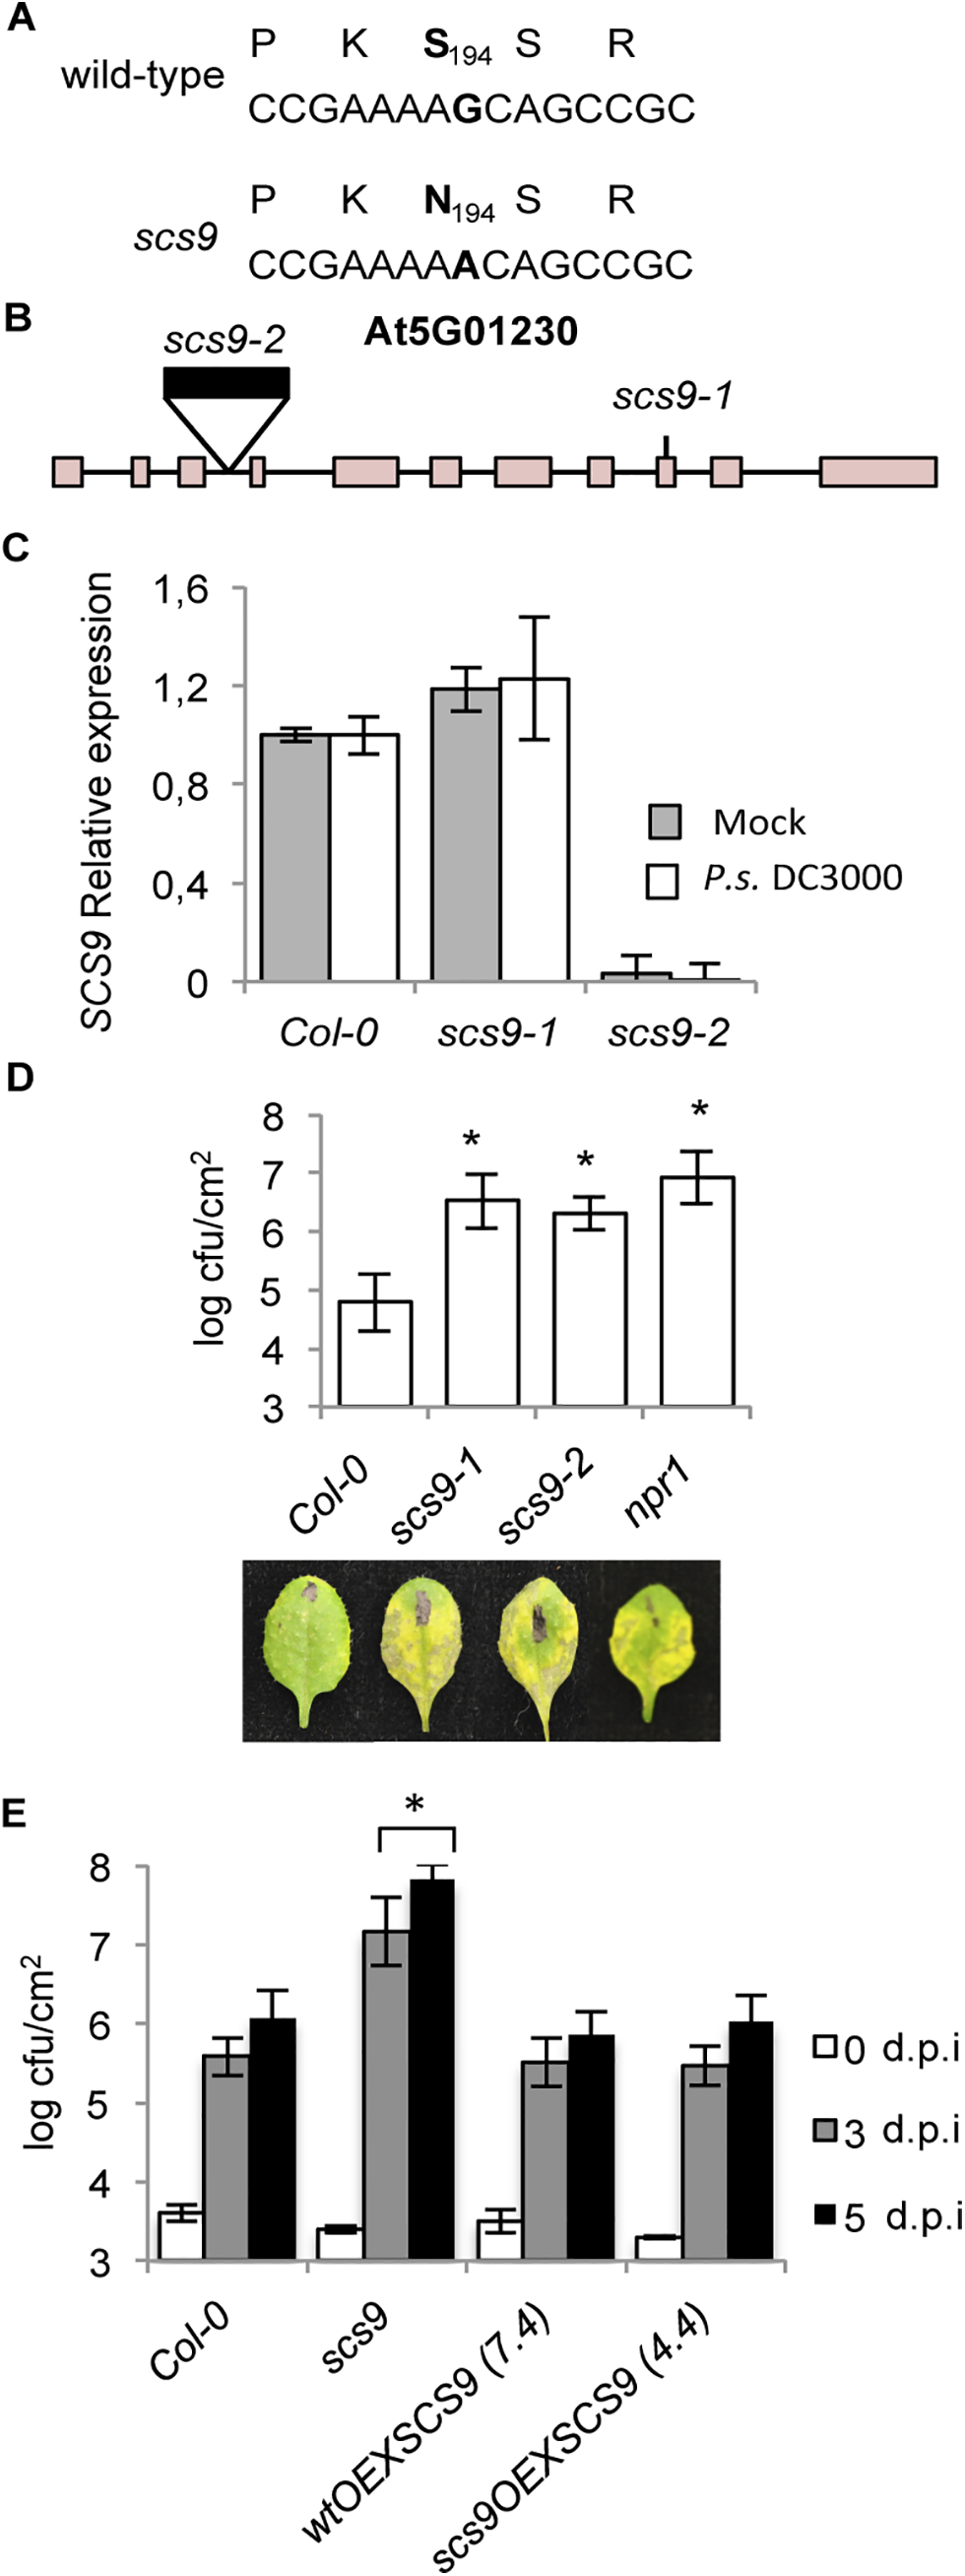 <i>scs9</i> is a mutant allele of At5g01230.